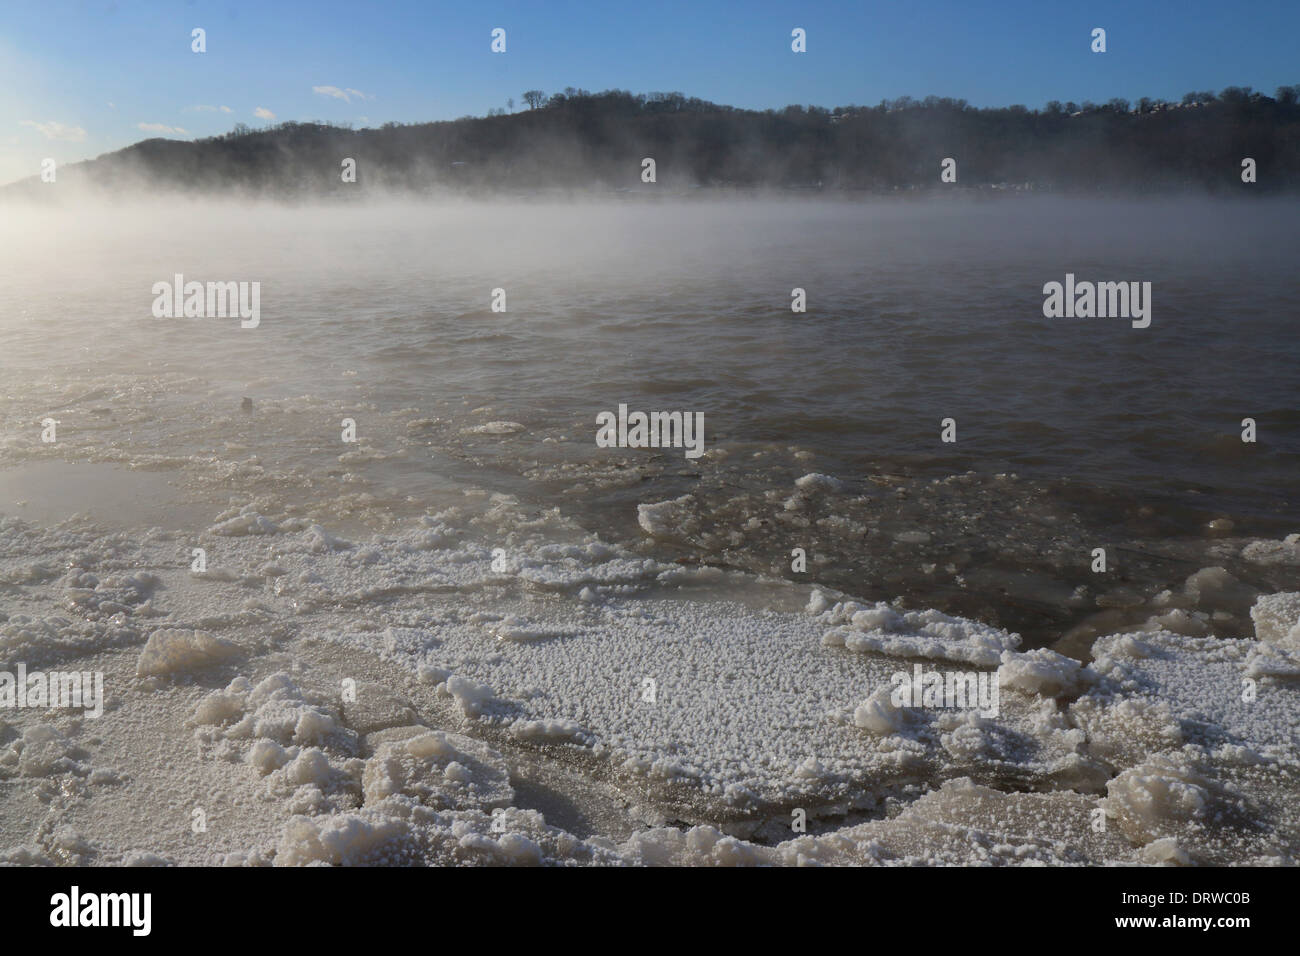 Three states of water - frozen, ice, solid, fog vapor, liquid Ohio river Cincinnati - Stock Image